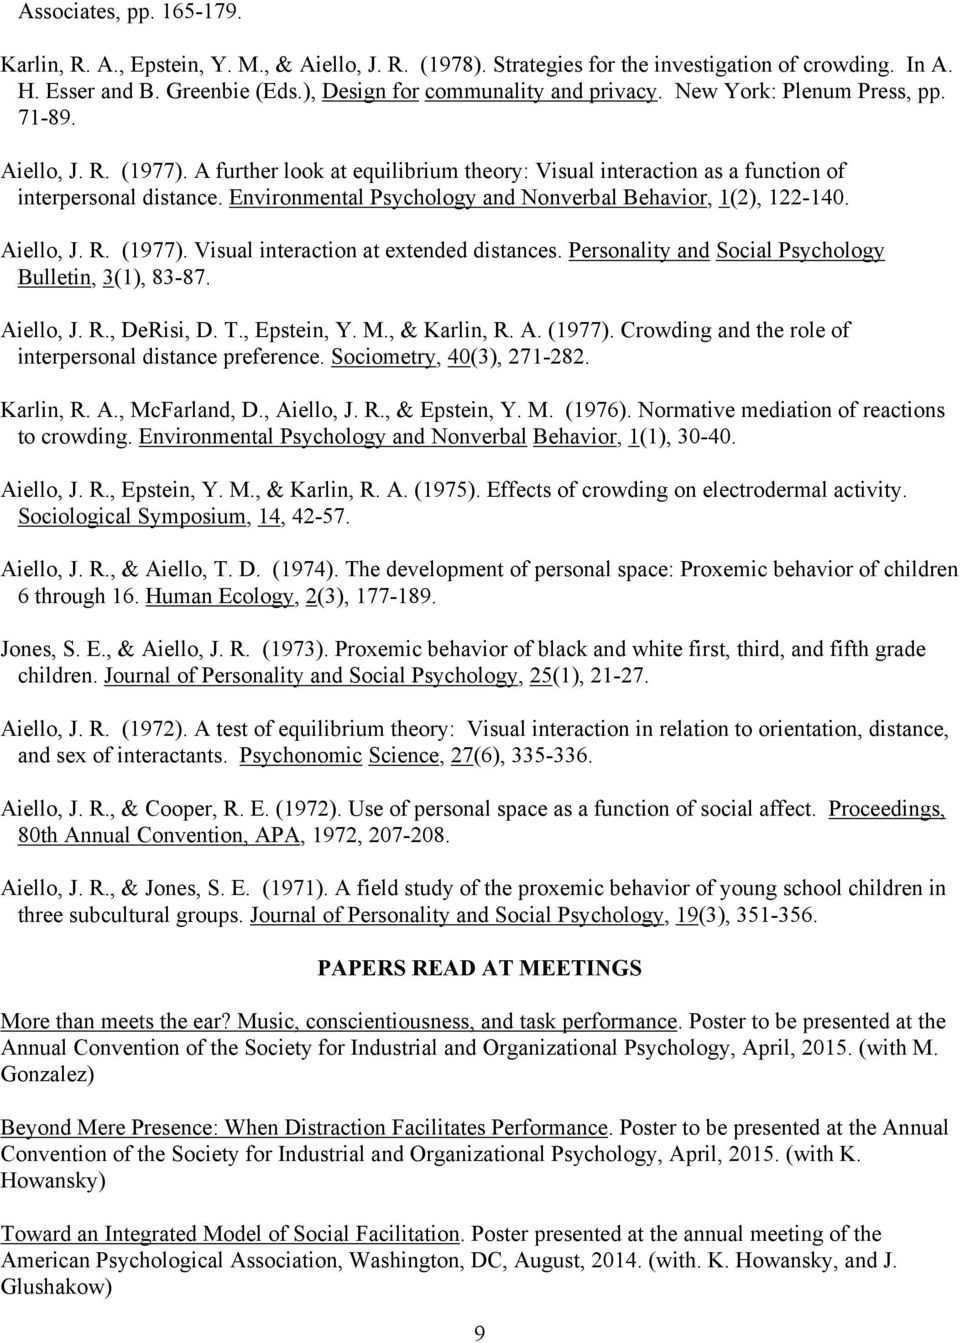 Environmental Psychology and Nonverbal Behavior, 1(2), 122-140. Aiello, J. R. (1977). Visual interaction at extended distances. Personality and Social Psychology Bulletin, 3(1), 83-87. Aiello, J. R., DeRisi, D.